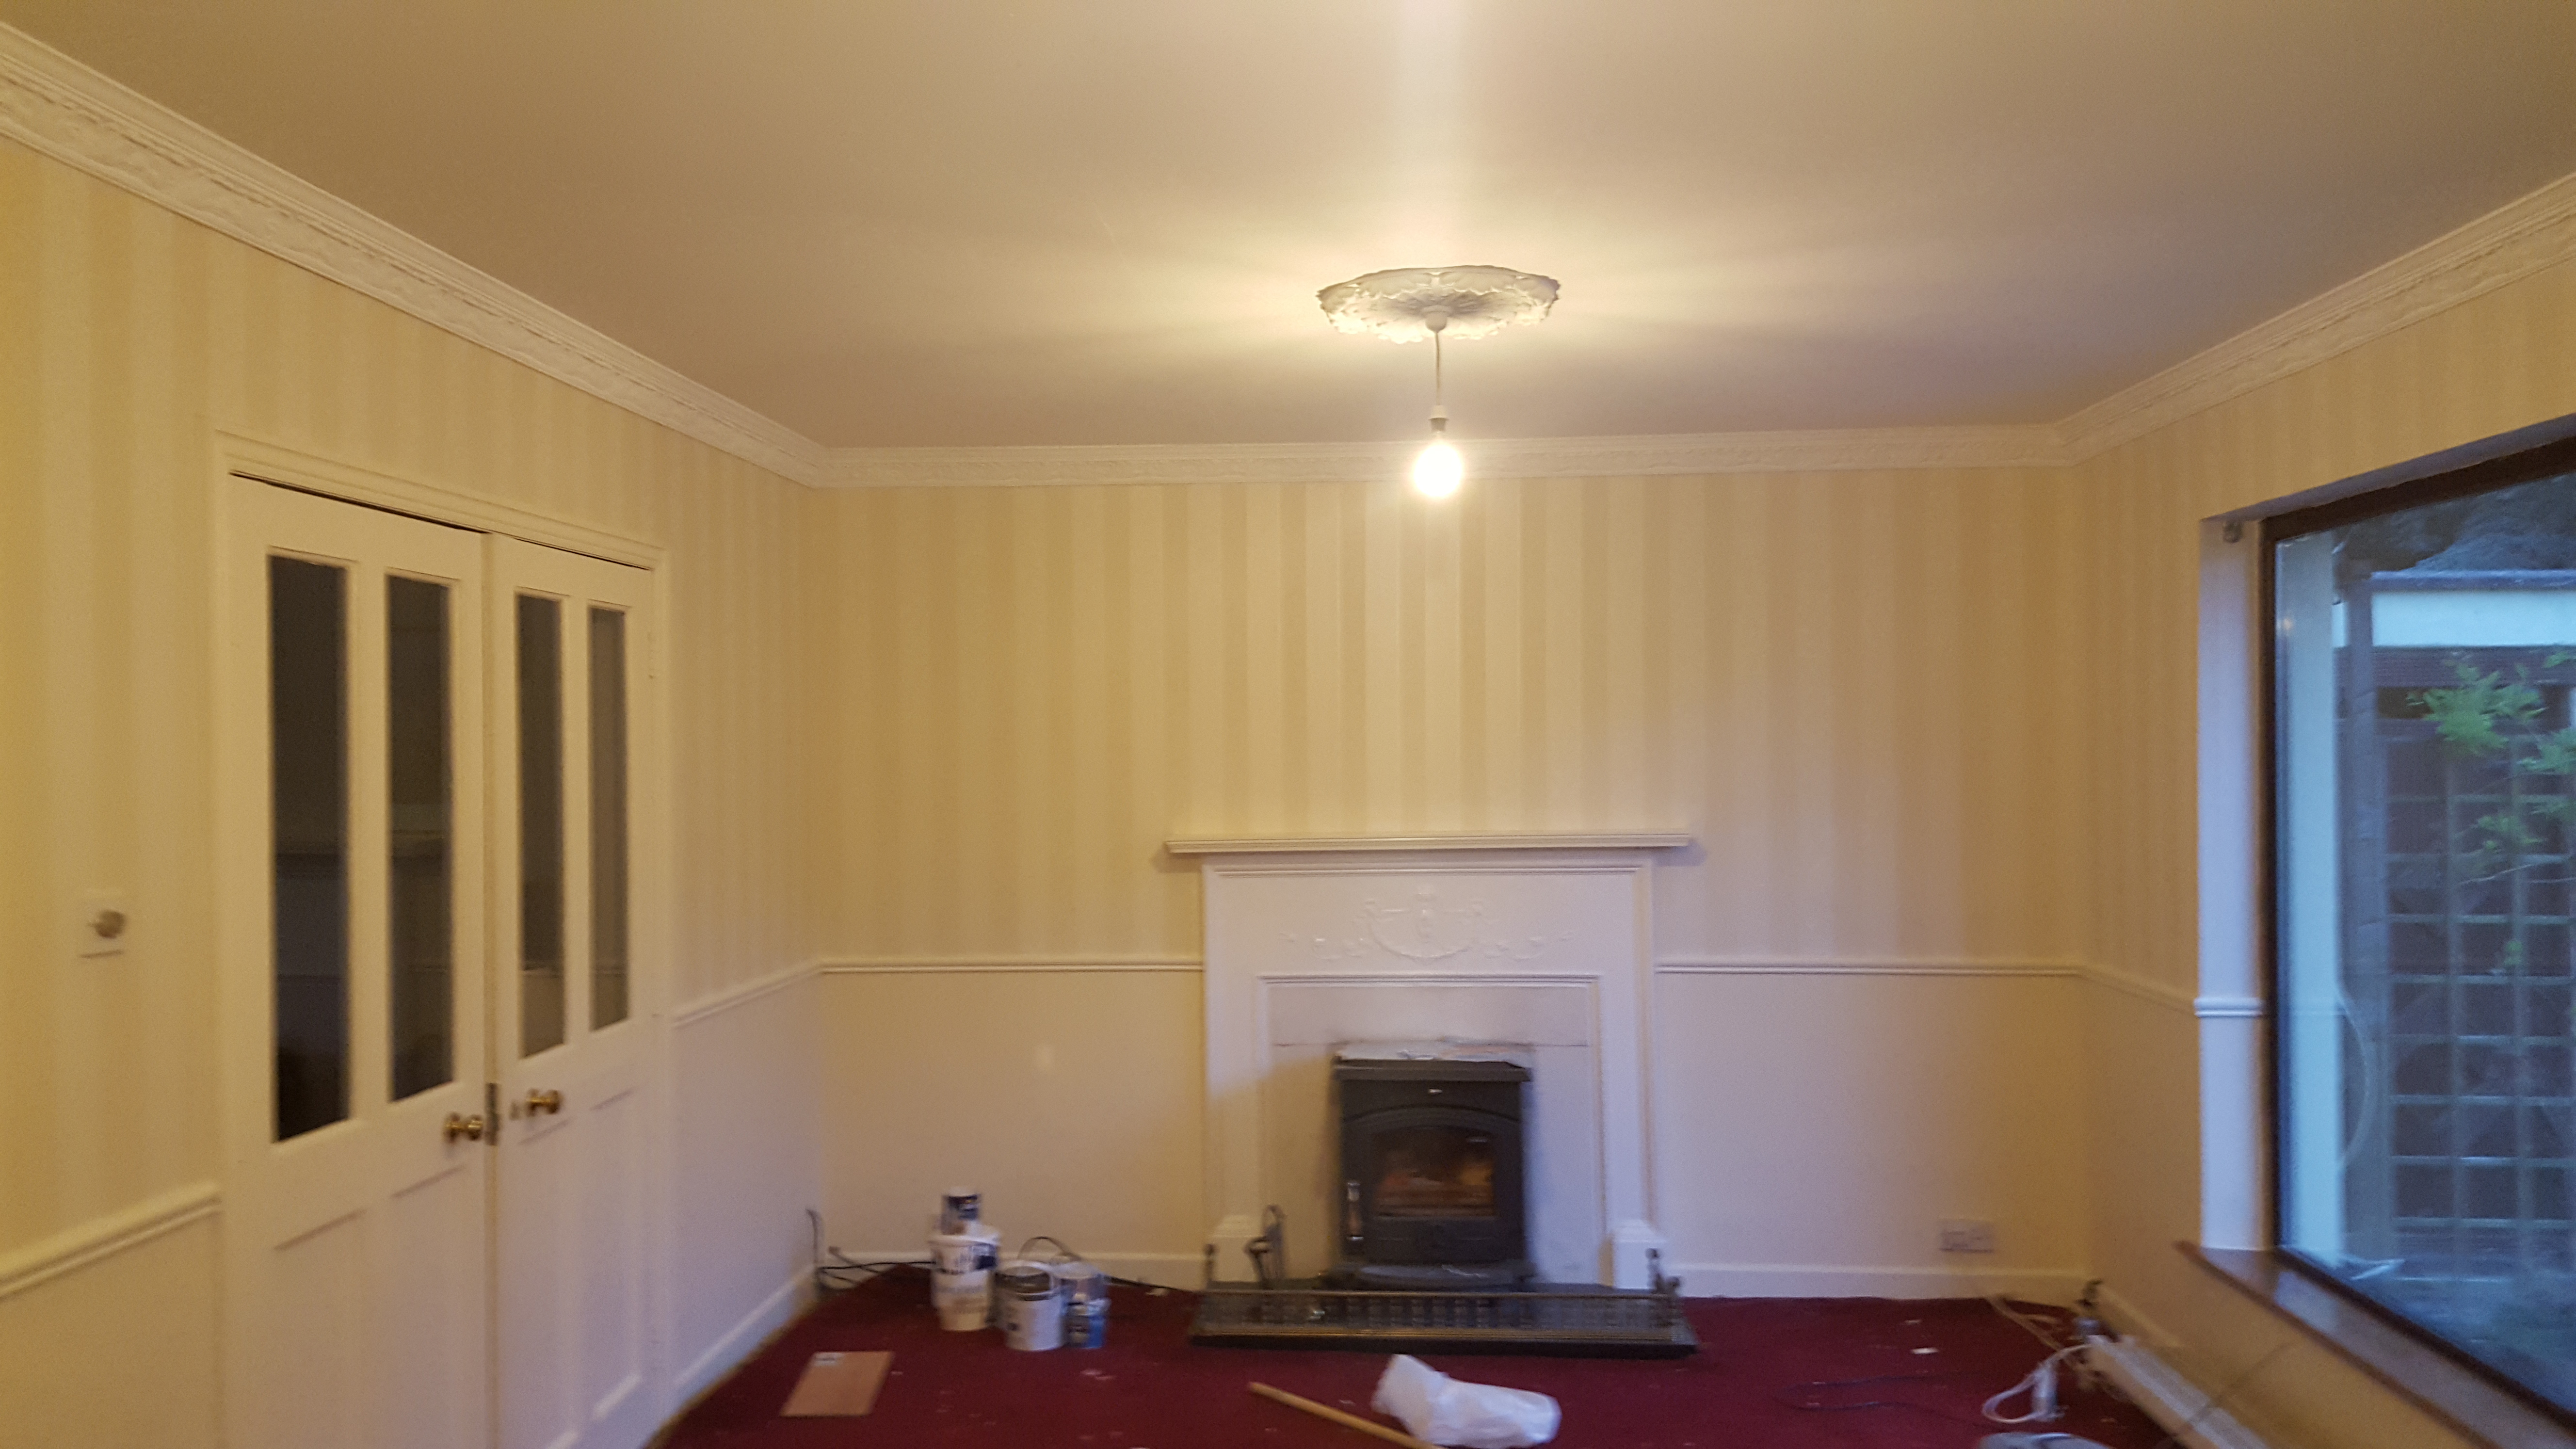 trend for trim molding decorative ideas white shocking pict wood dining wall xfile room concept and transitional decor